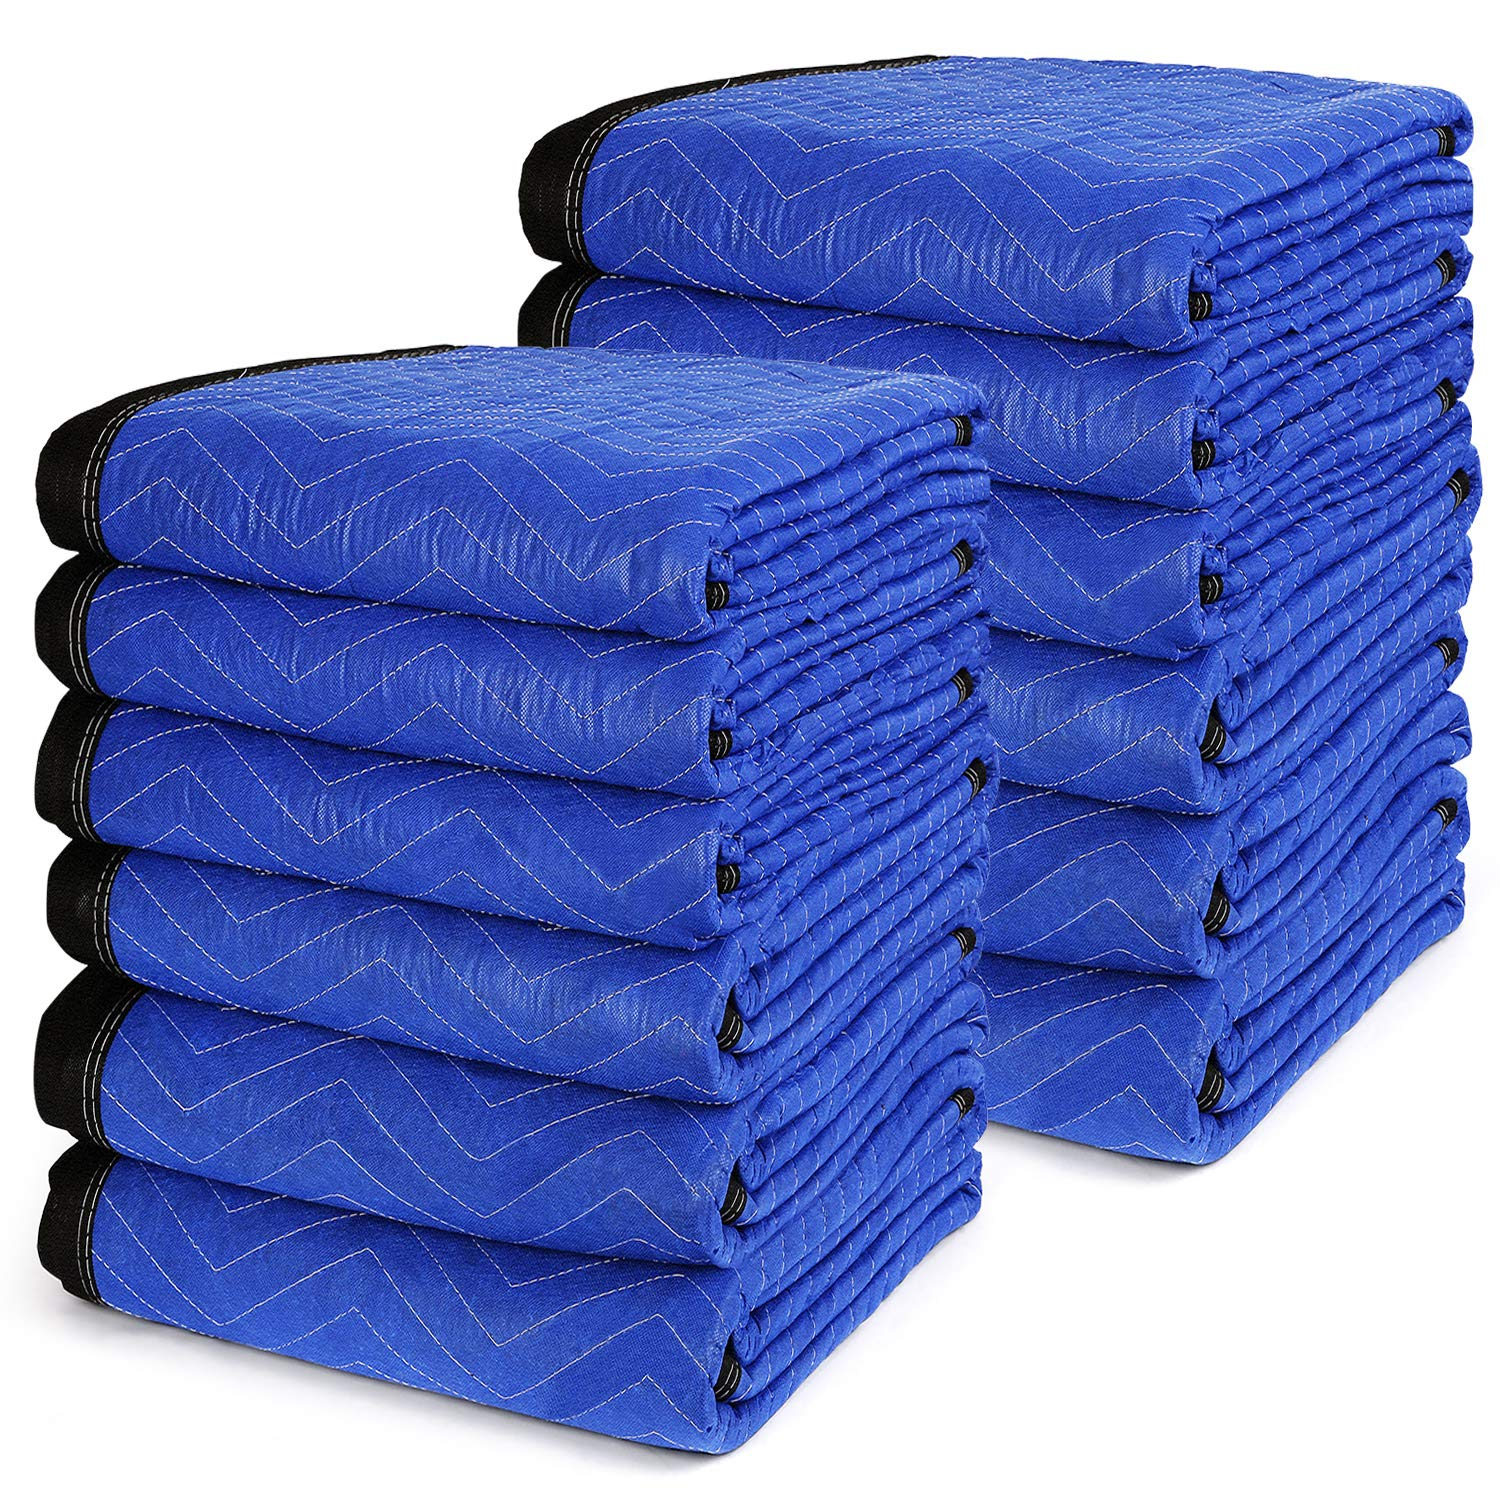 72 x 80 Inches Pro Moving Blankets Pack of 12 - TUSY Packing Blankets 65lb, Ultra Thick Professional Quality Moving Skins